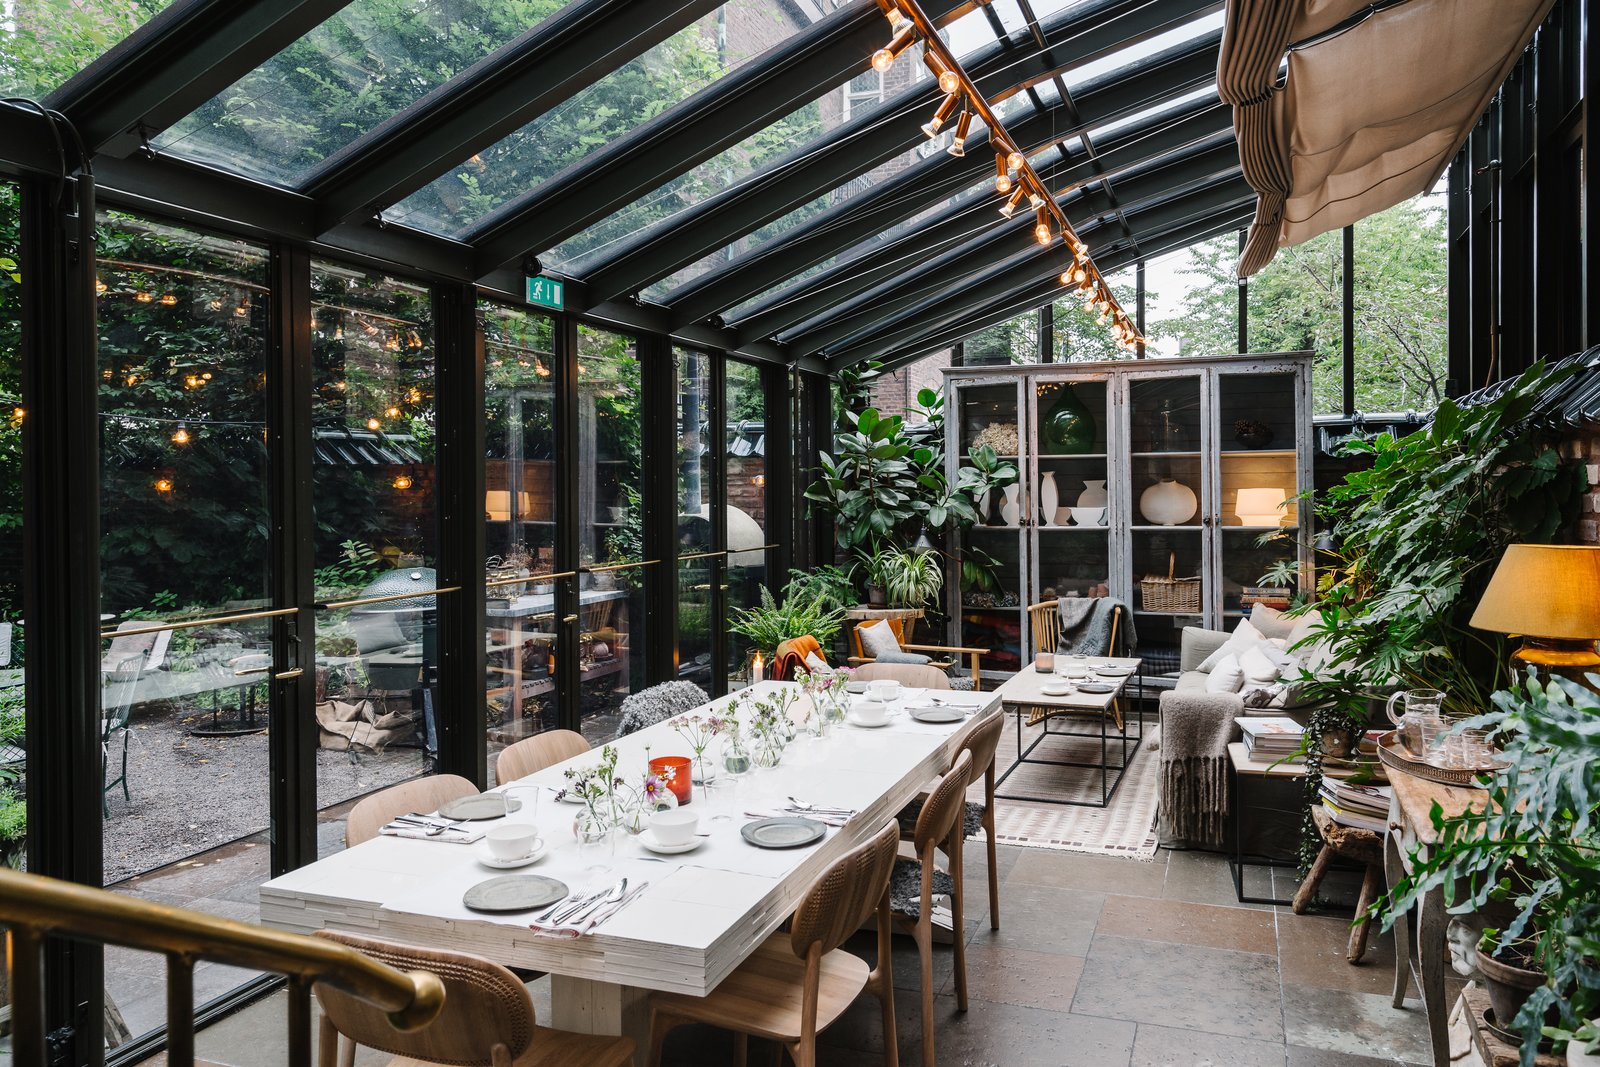 Crawford added a covered patio where guests can relax and enjoy a meal within the garden. The leafy glass house houses modern, natural-feeling wood furnishings and cozy textiles.  Photo 8 of 13 in A Visual Journey Through Stockholm's Hotel Ett Hem